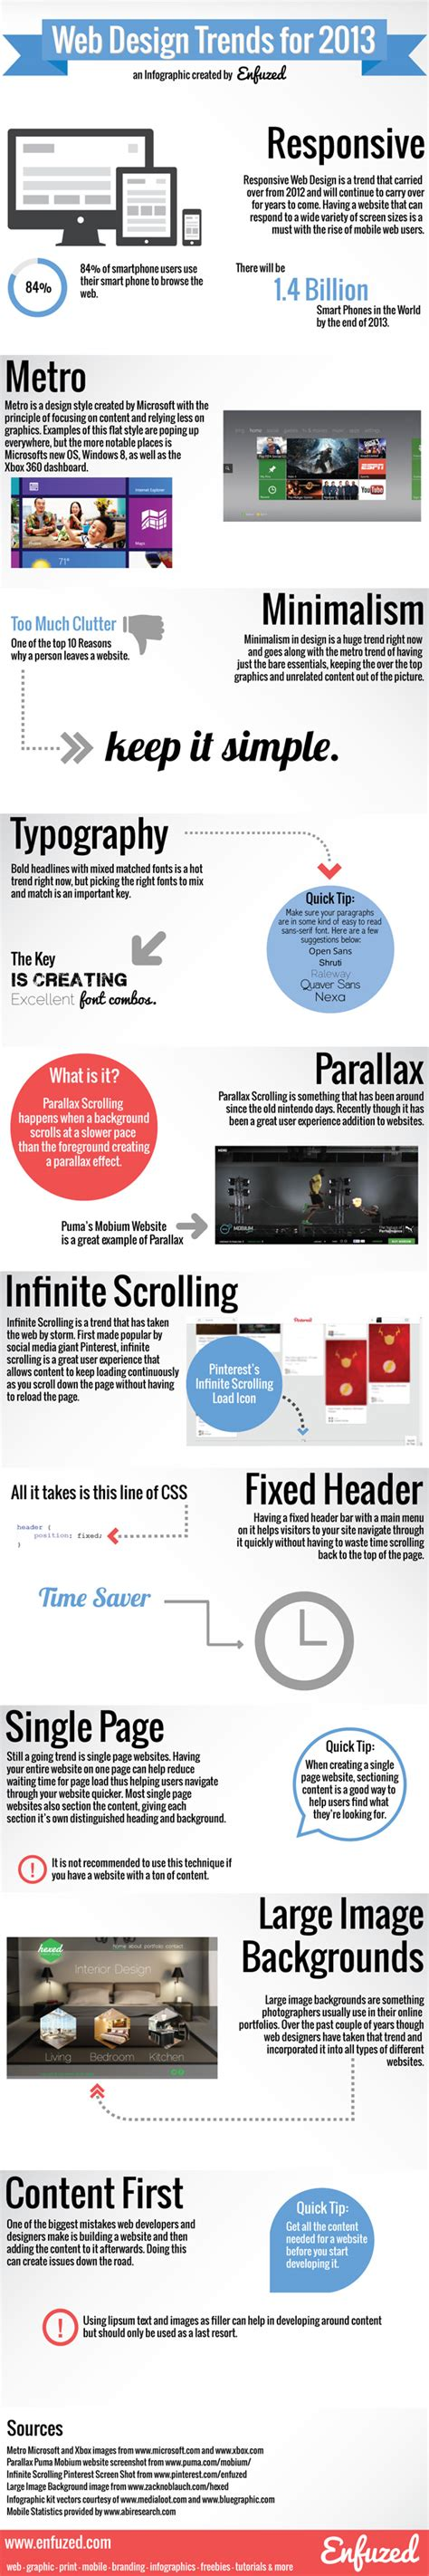 homepage design trends 2013 web design trends infographic